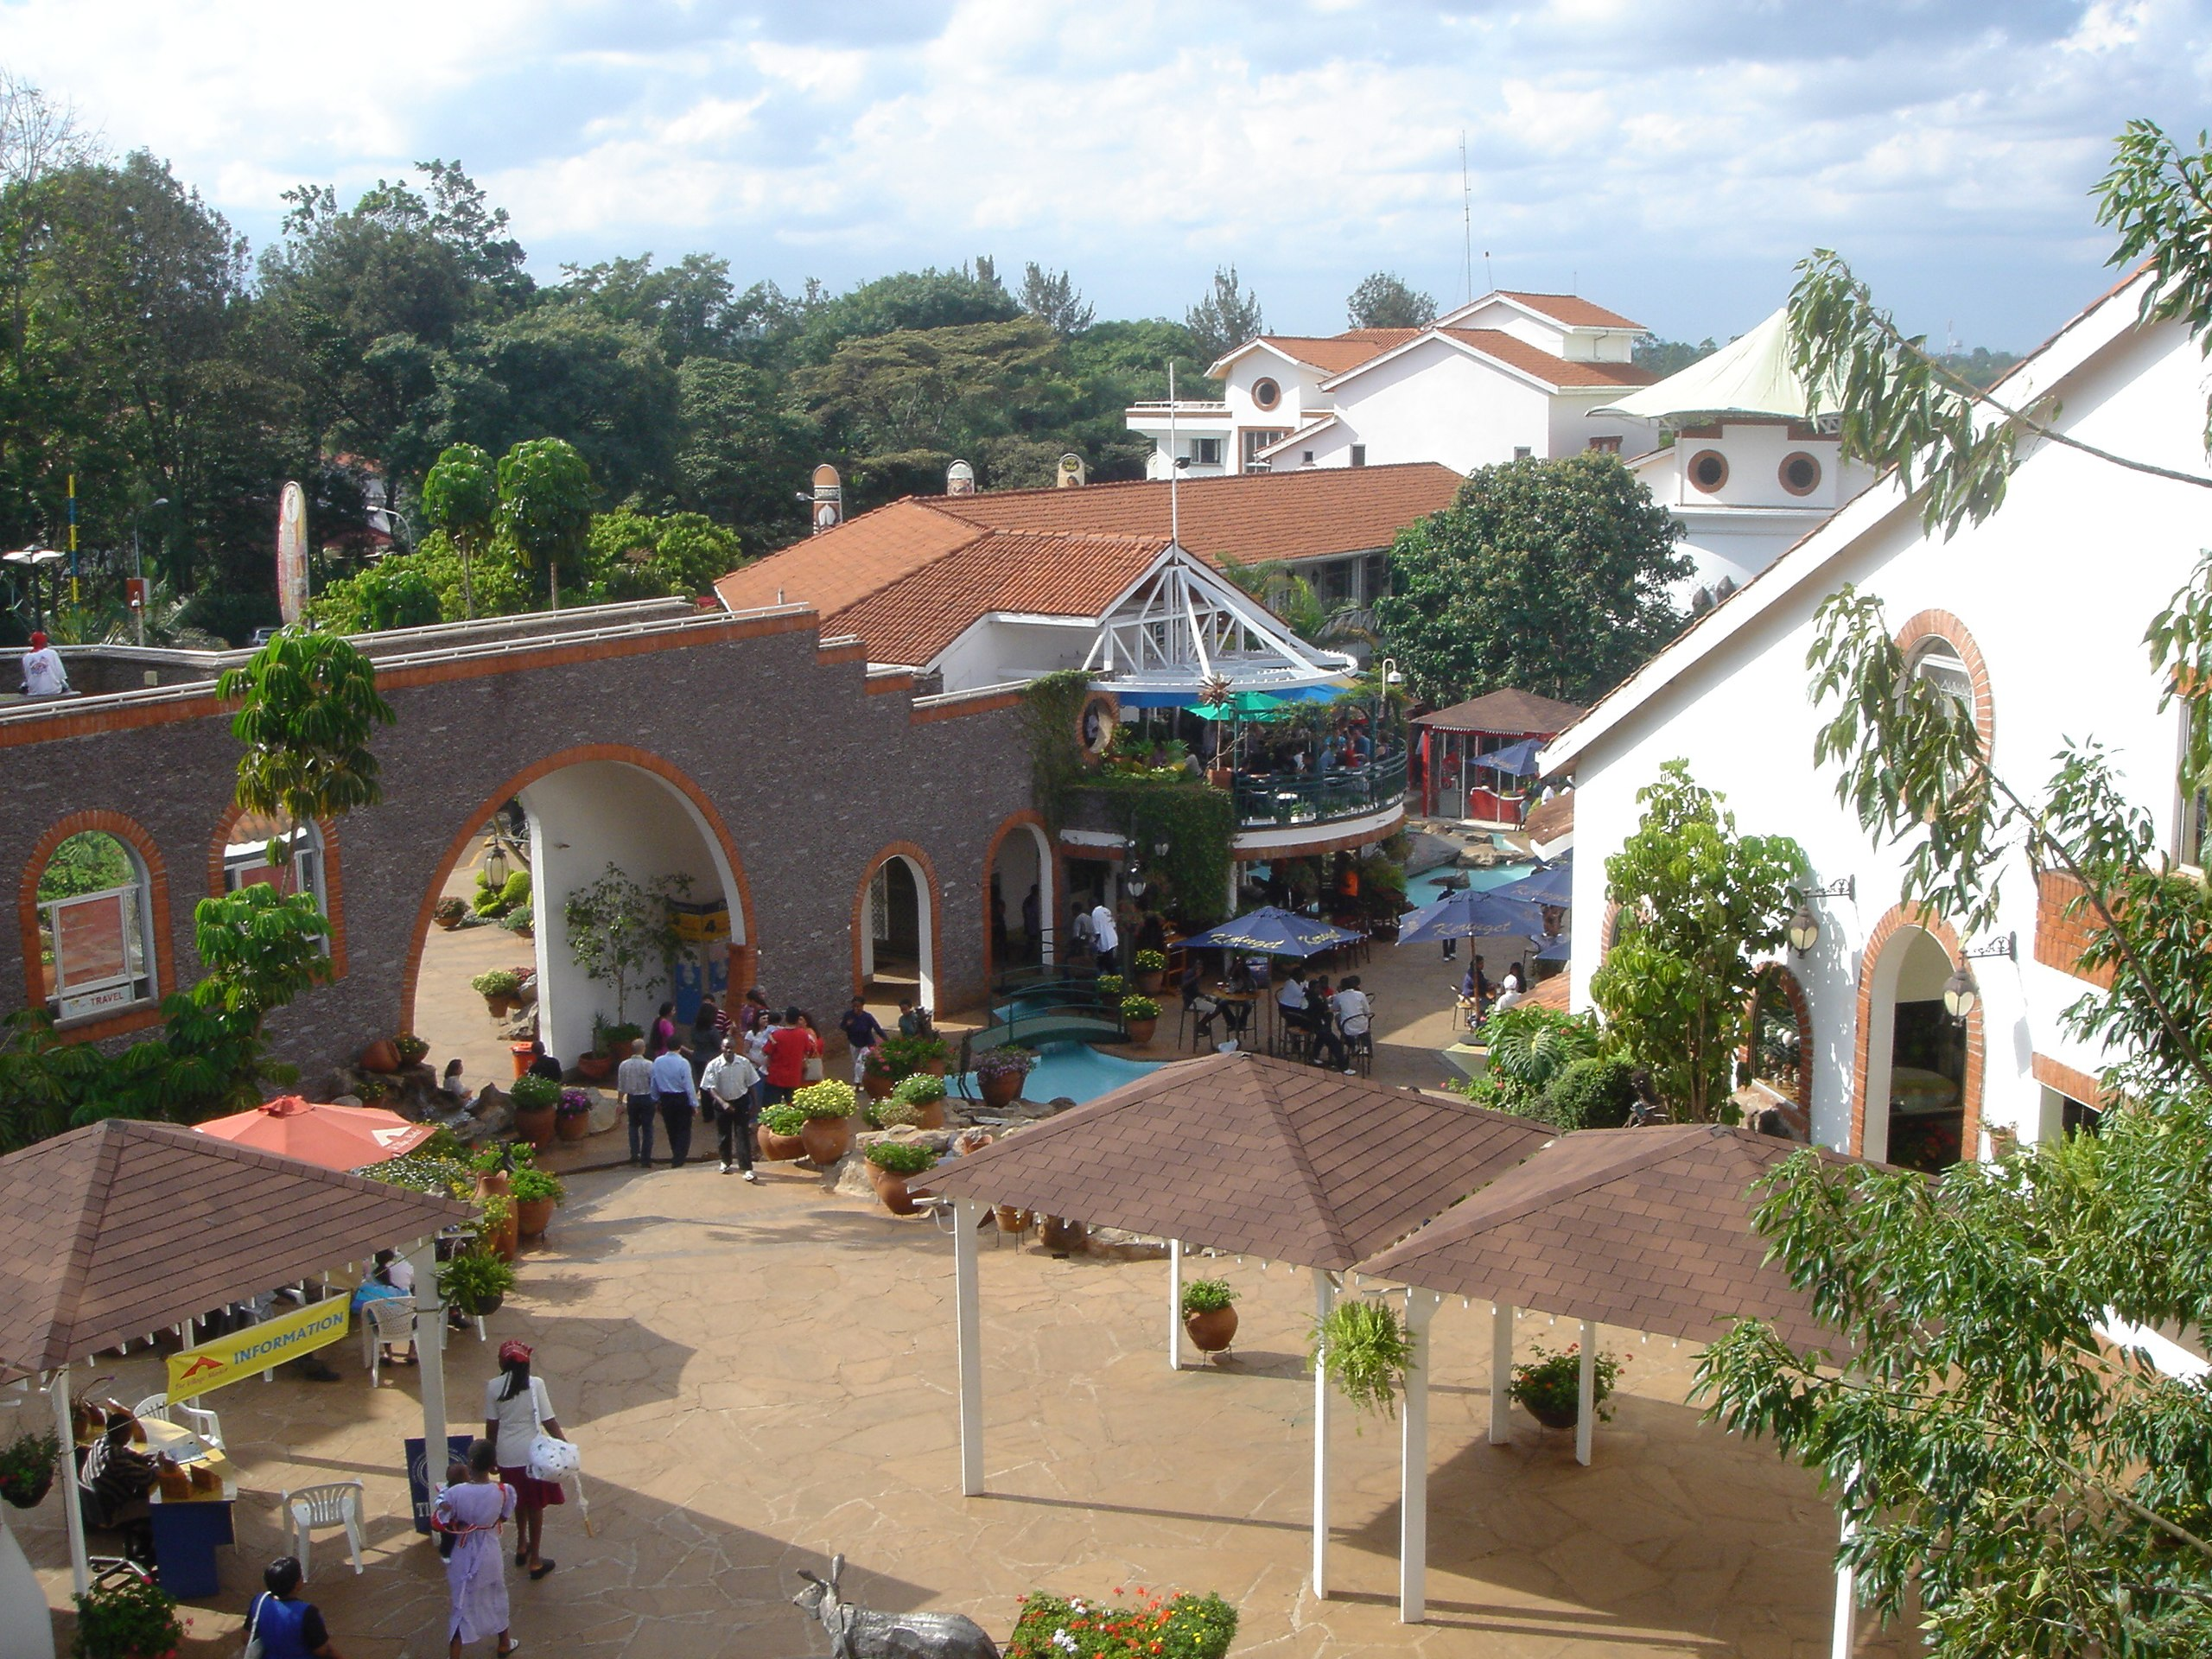 places to visit in nairobi - village market